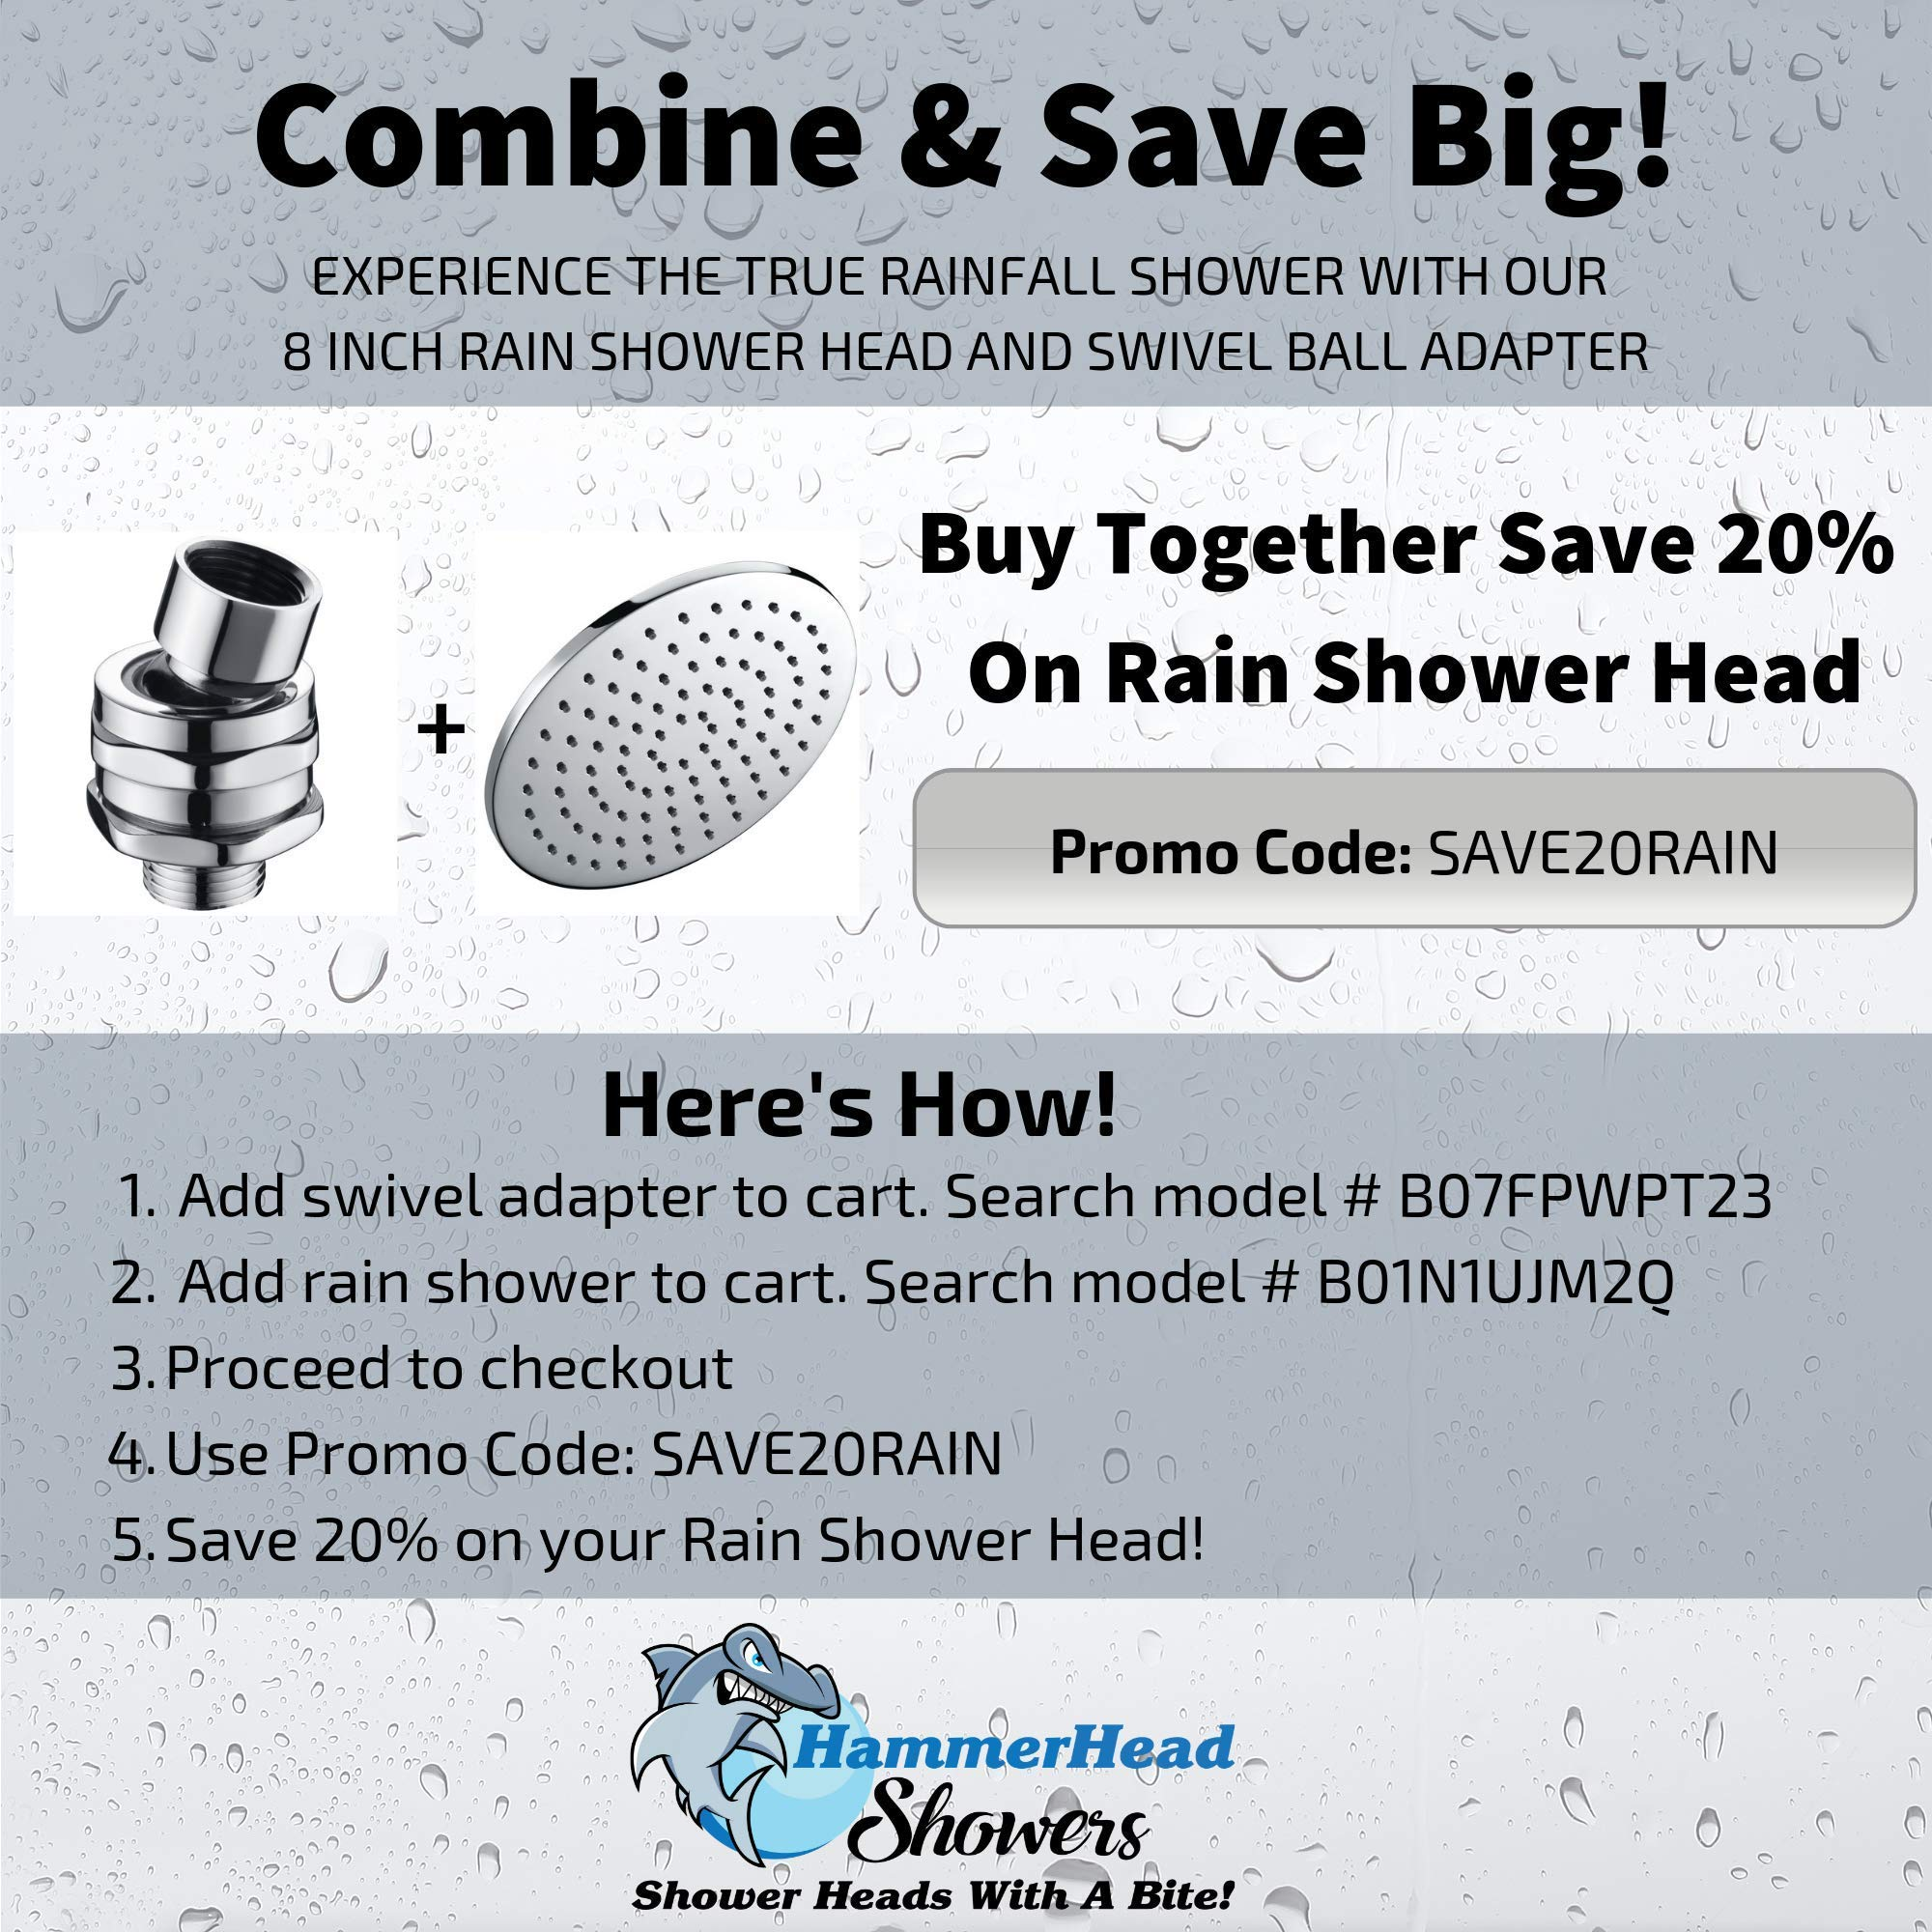 100 Metal Shower Head Swivel Ball Adapter Adjustable Pivot Ball To Adjust Showerhead Angle Universal Connector Joint Fits Fixed Hand Held Rain Shower Heads Chrome Amazon Sg Home Improvement